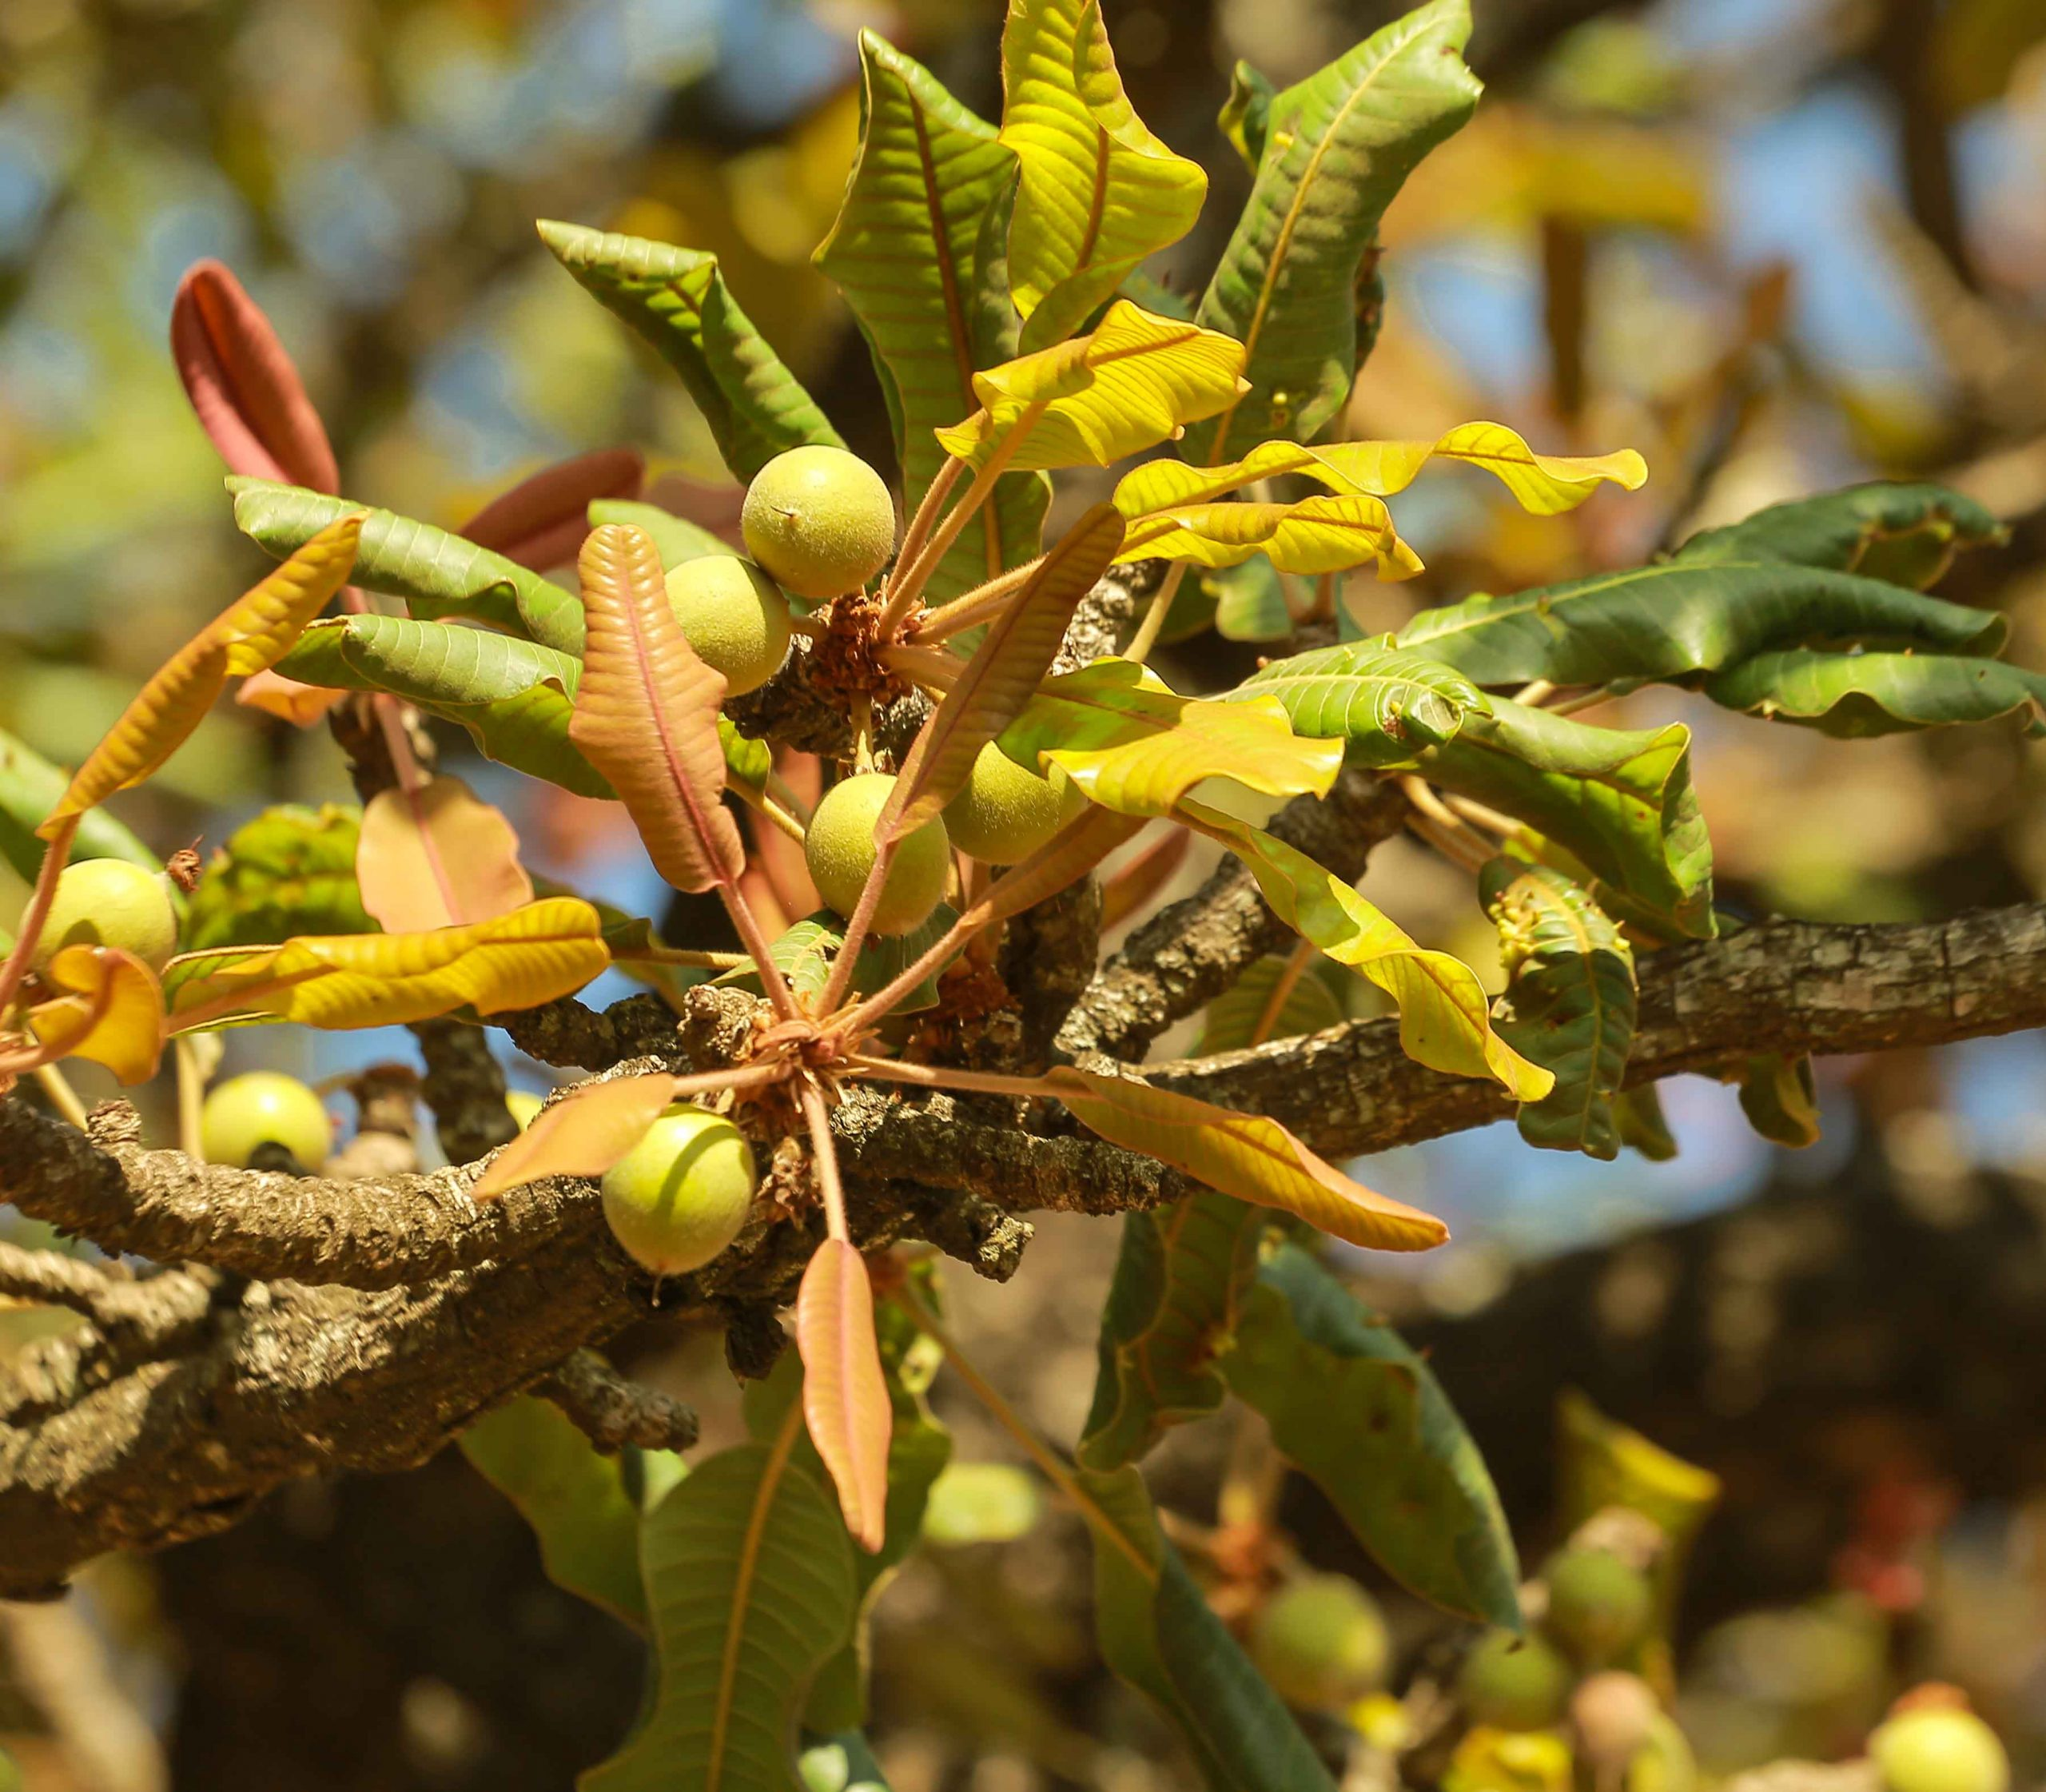 Nilotica fruits on the shea trees